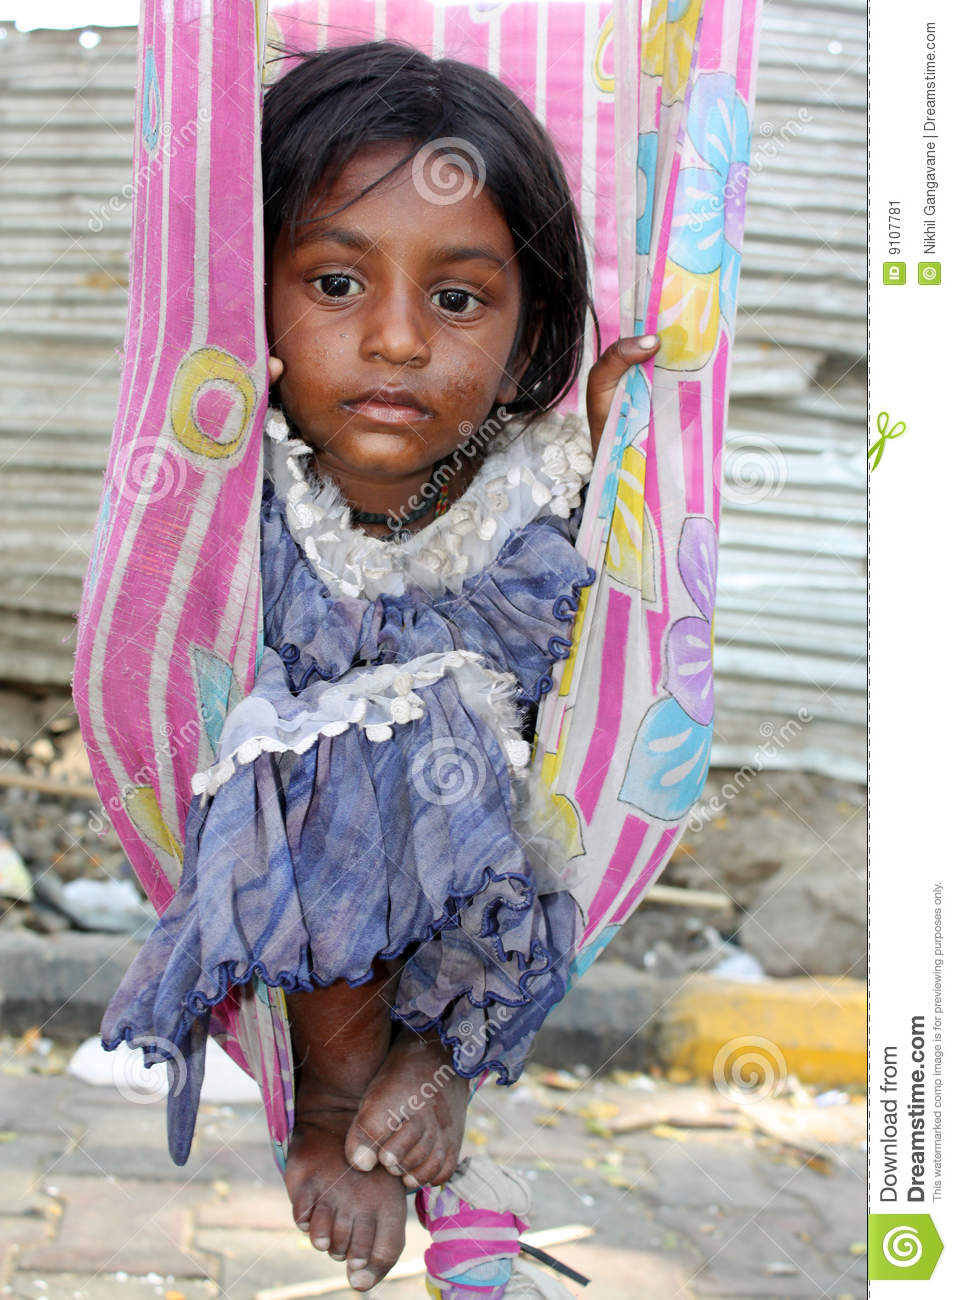 The very poor sick Indian girl sitting in a swing made of an old sari  (traditional women clothes), lost in her thoughts.